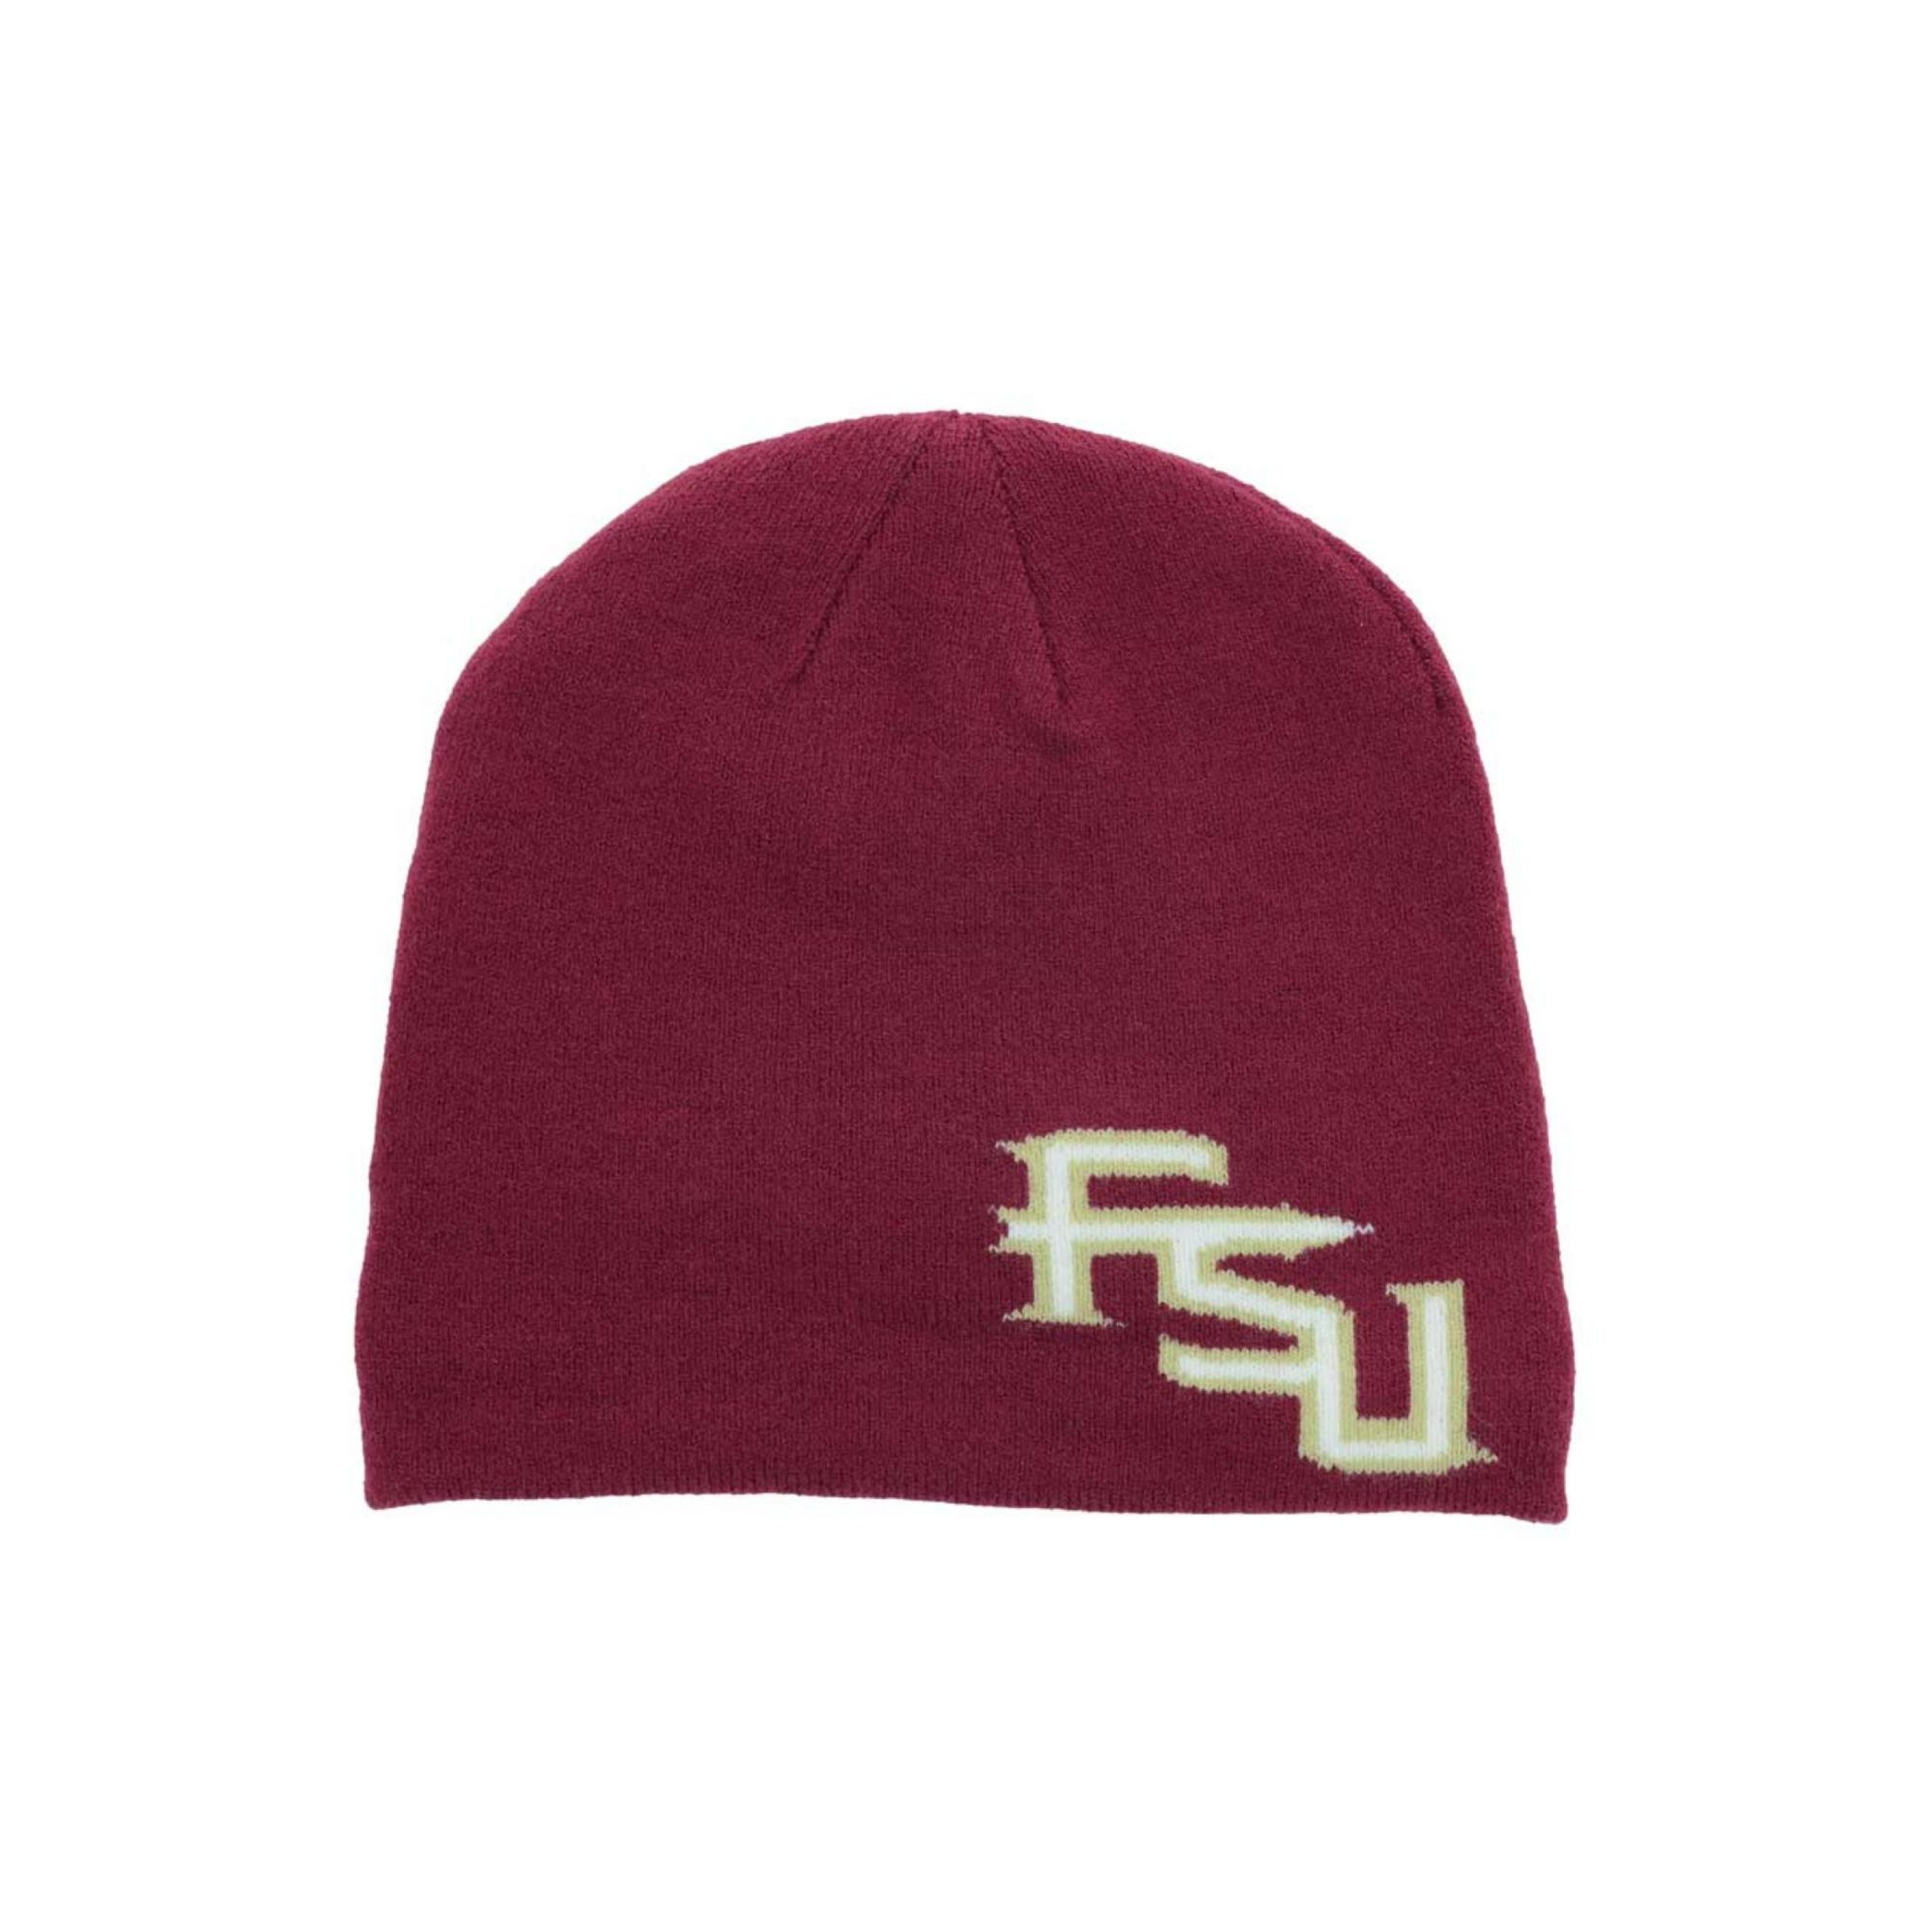 Lyst - Nike Florida State Seminoles Motto Reversible Knit Hat in ... e64ab3548a7